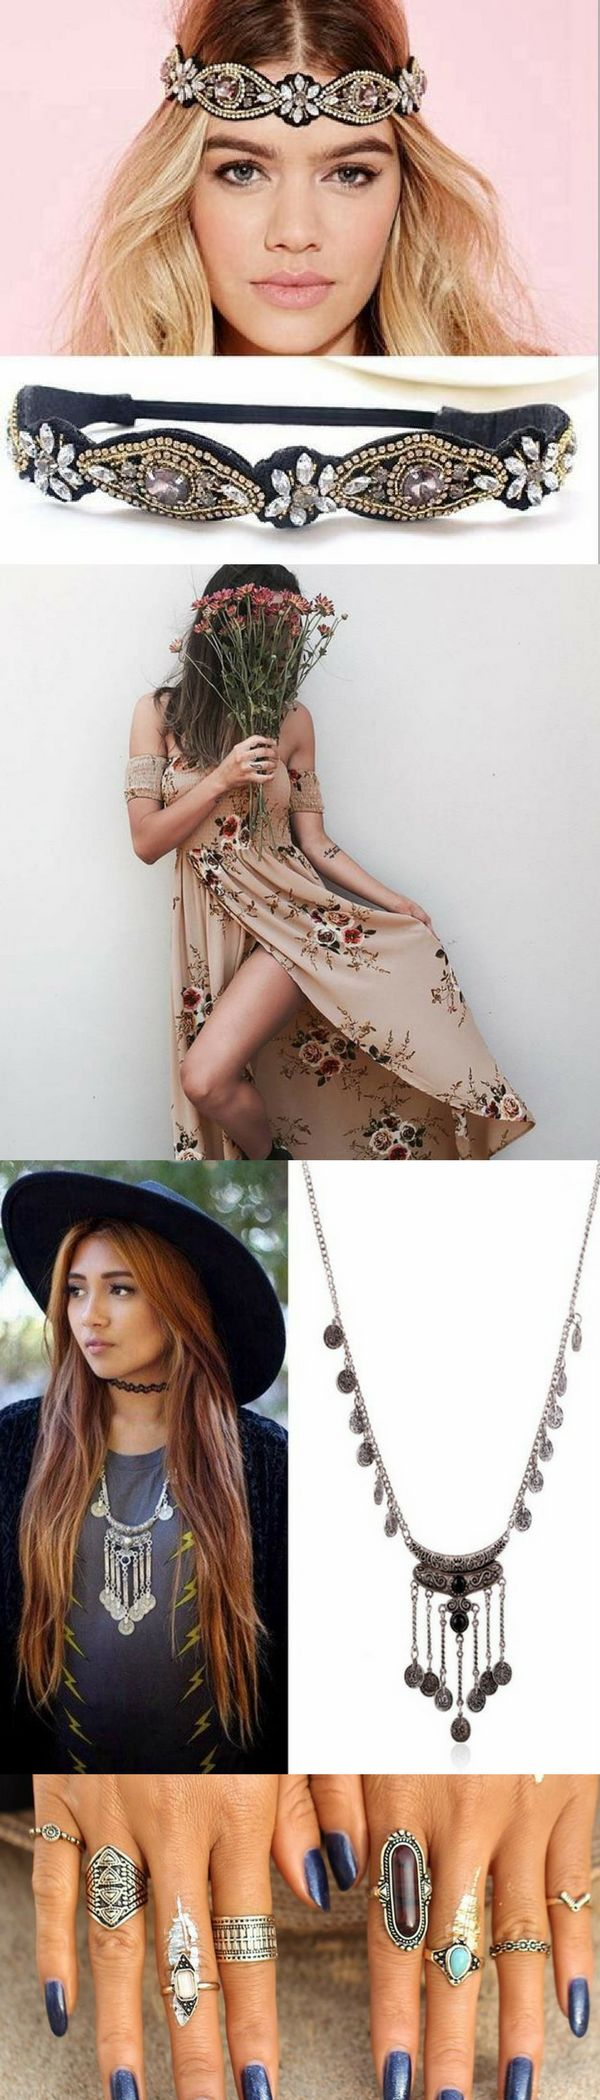 Festival clothing, attire and fashion are free-spirited styles that are perfect for music festivals, events, concerts, Burning Man or even a night out on the town.  festival outfits,  festival wear  festival dresses,  festival outfit,  festival fashion,  festival clothing womens